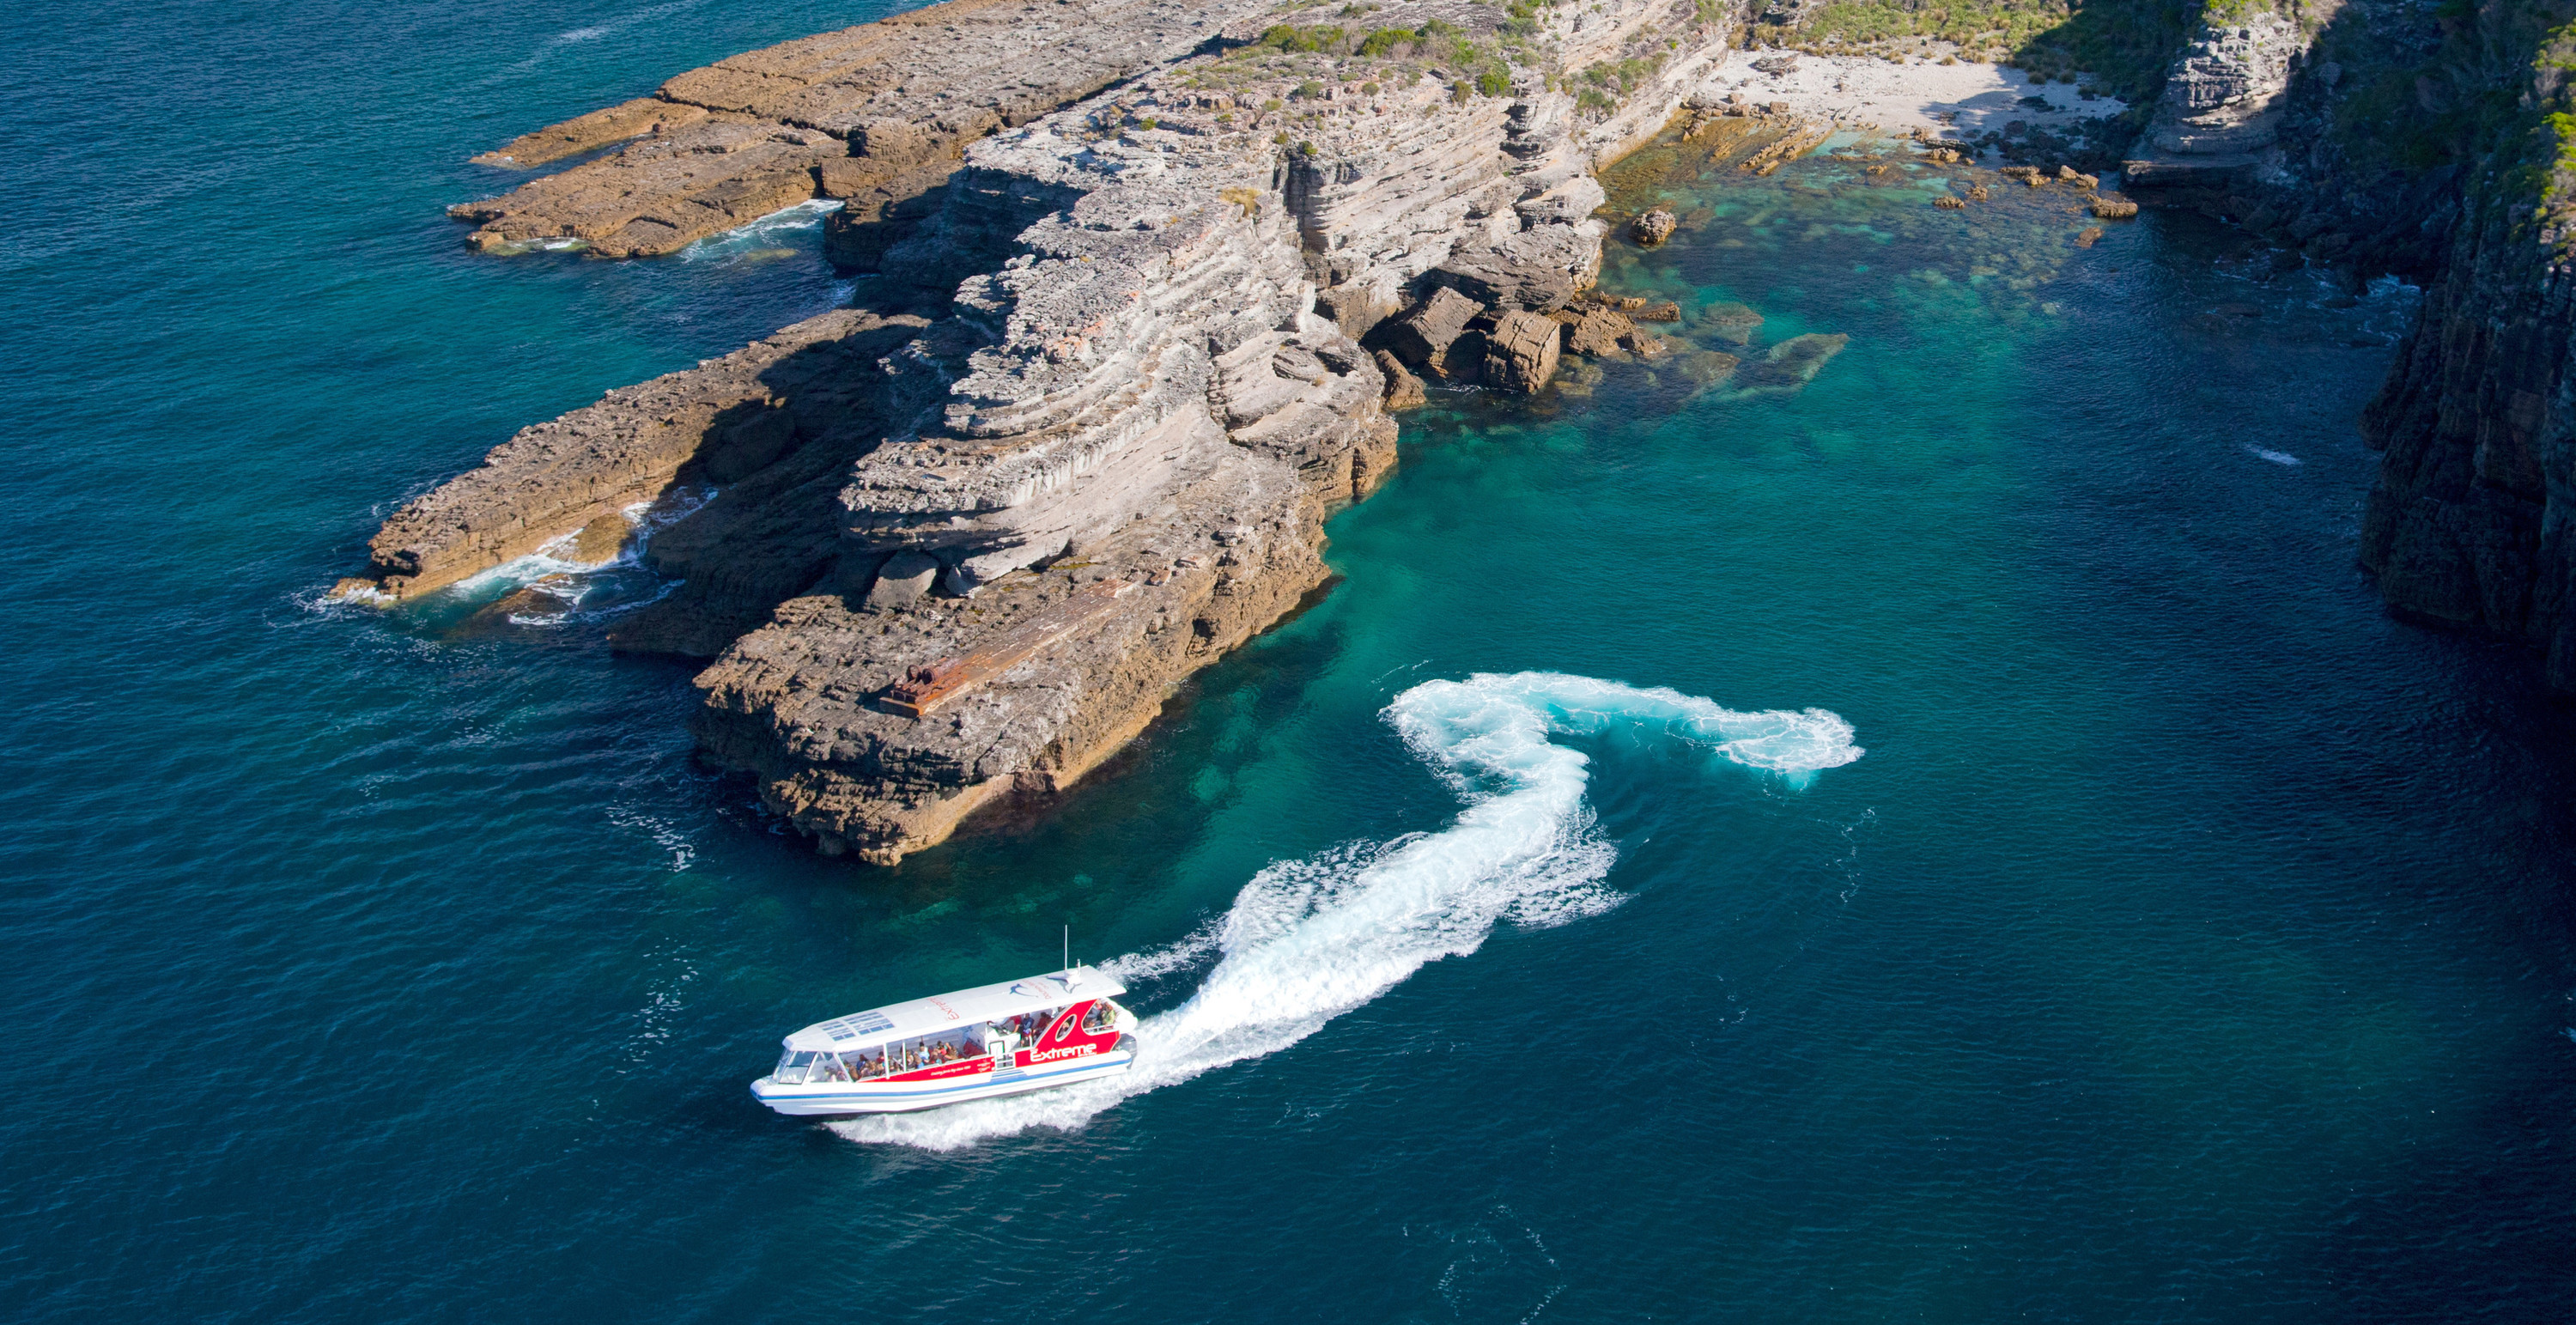 Aerial view of Extreme cruise boat at Jervis Bay harbour, Dolphin Watch Cruises Jervis Bay, South Coast